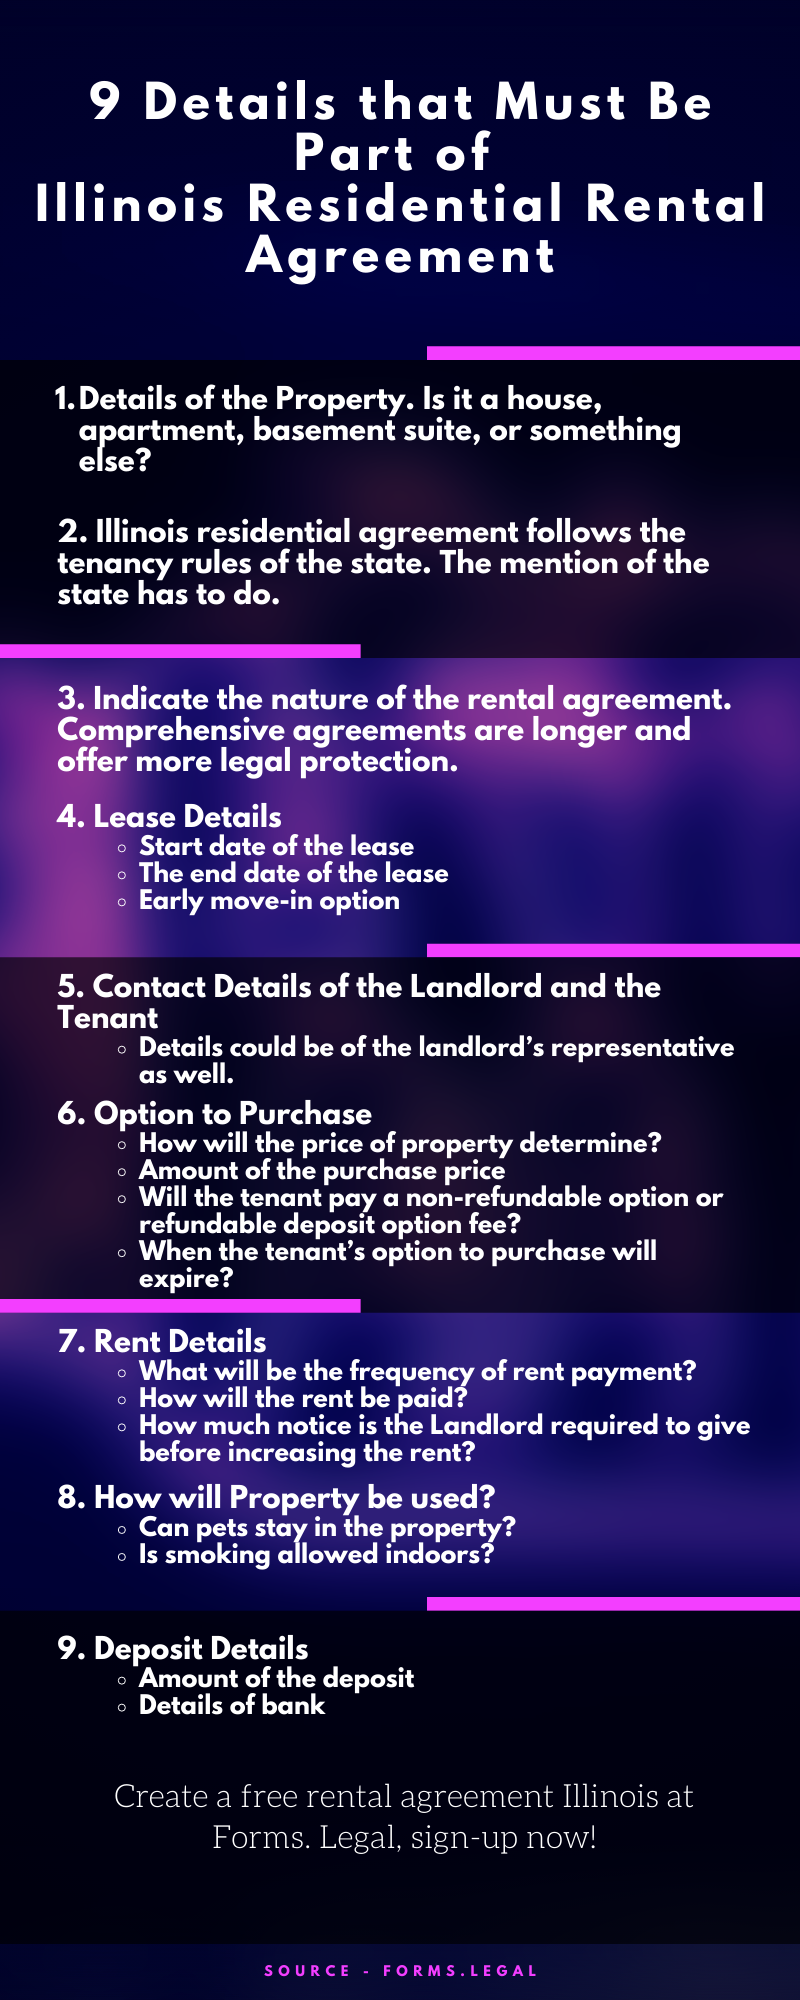 9 Details That Must Be Part Of Illinois Residential Rental Agreement Infographic Infographic Marketing Educational Infographic